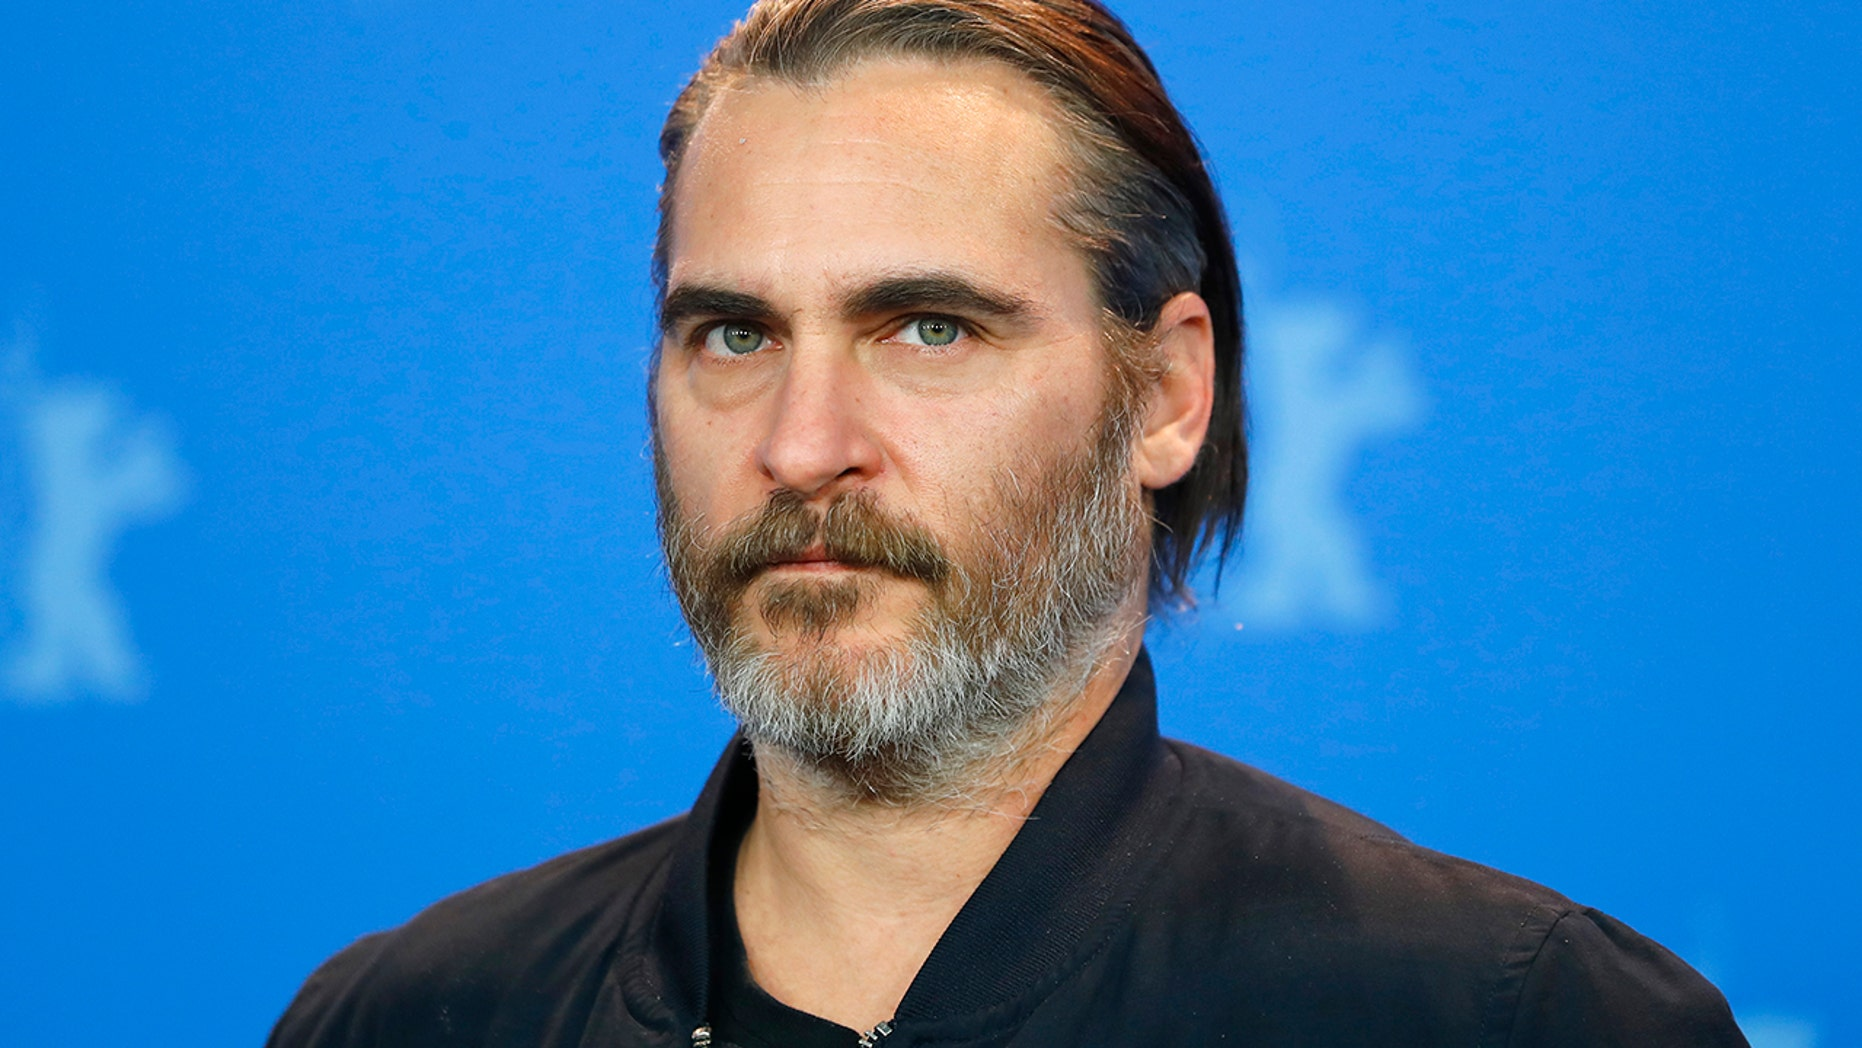 Joaquin Phoenix is set to star in a Joker origin movie.